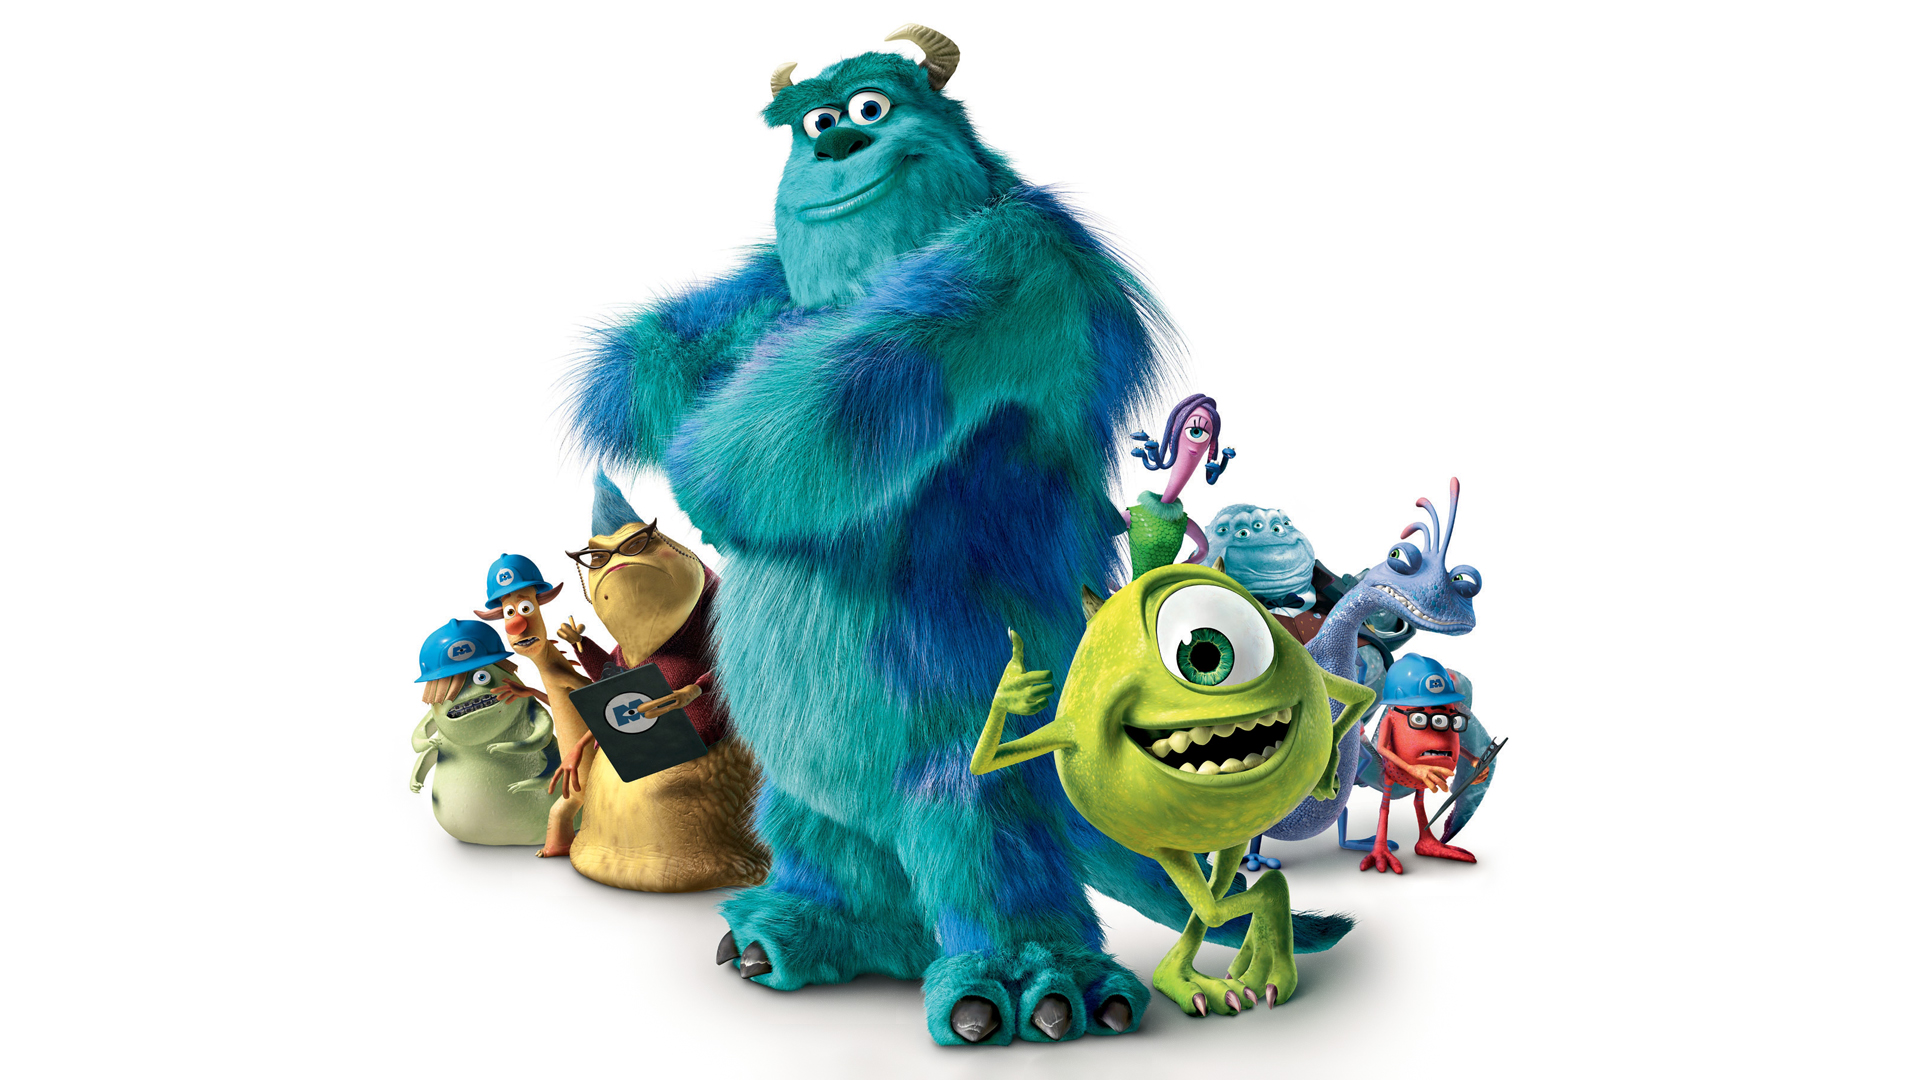 monsters inc wallpapers high quality | download free